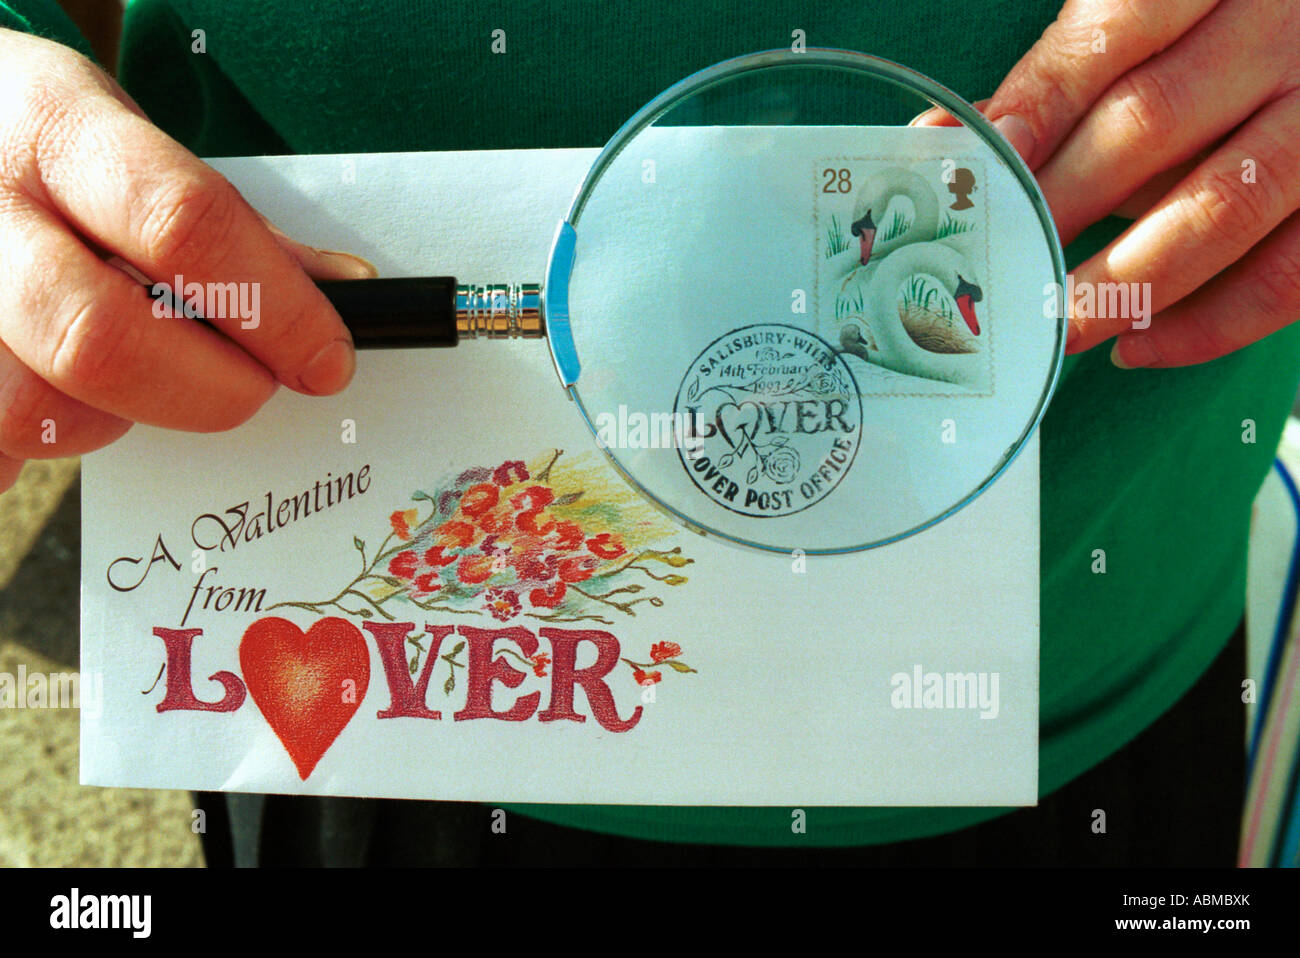 A valentines day card stamped with the Lover postmark - Stock Image